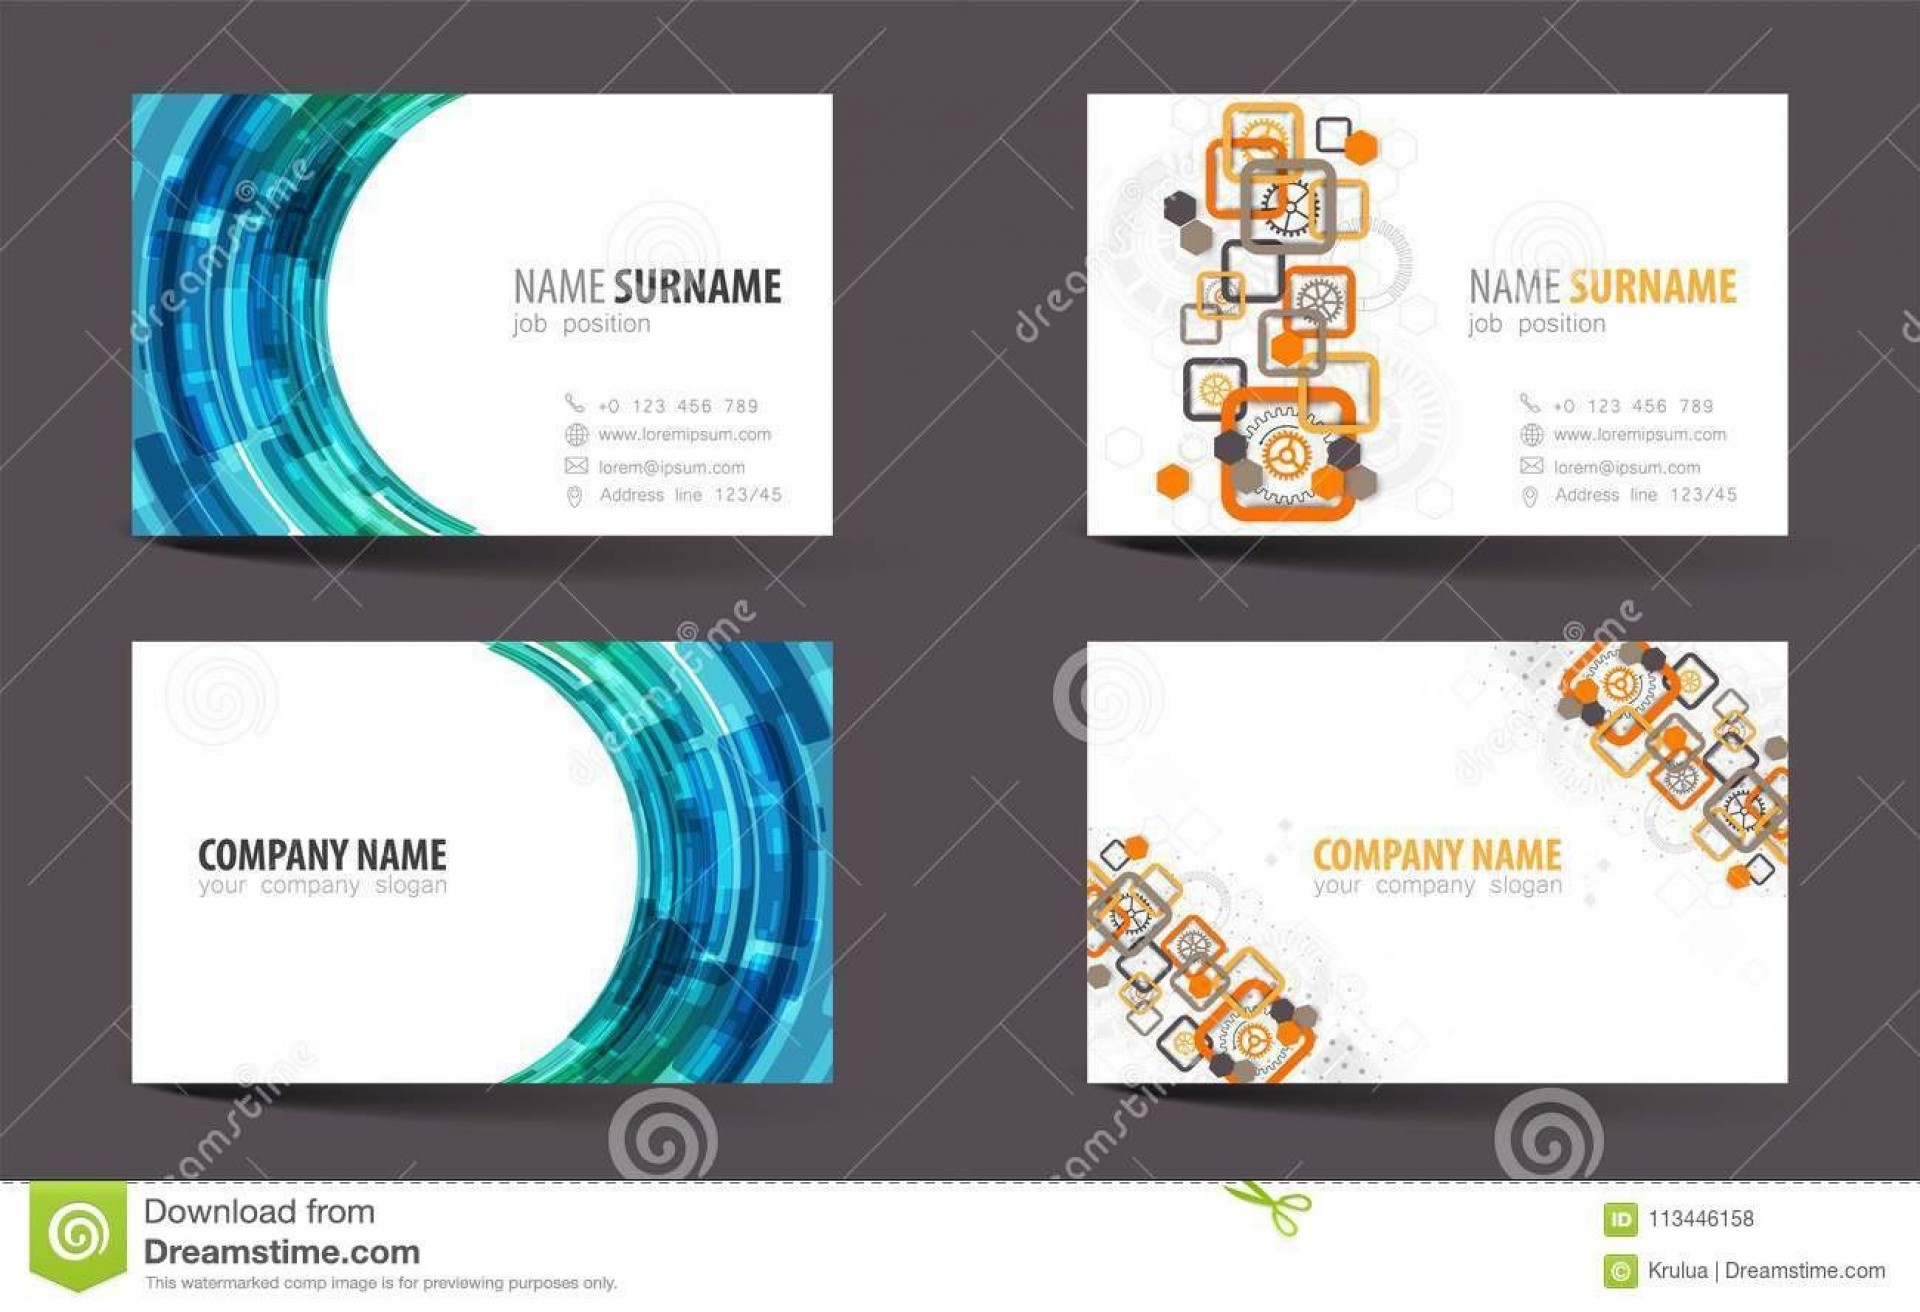 004 Remarkable Double Sided Busines Card Template Sample  Templates Word Free Two Microsoft1920